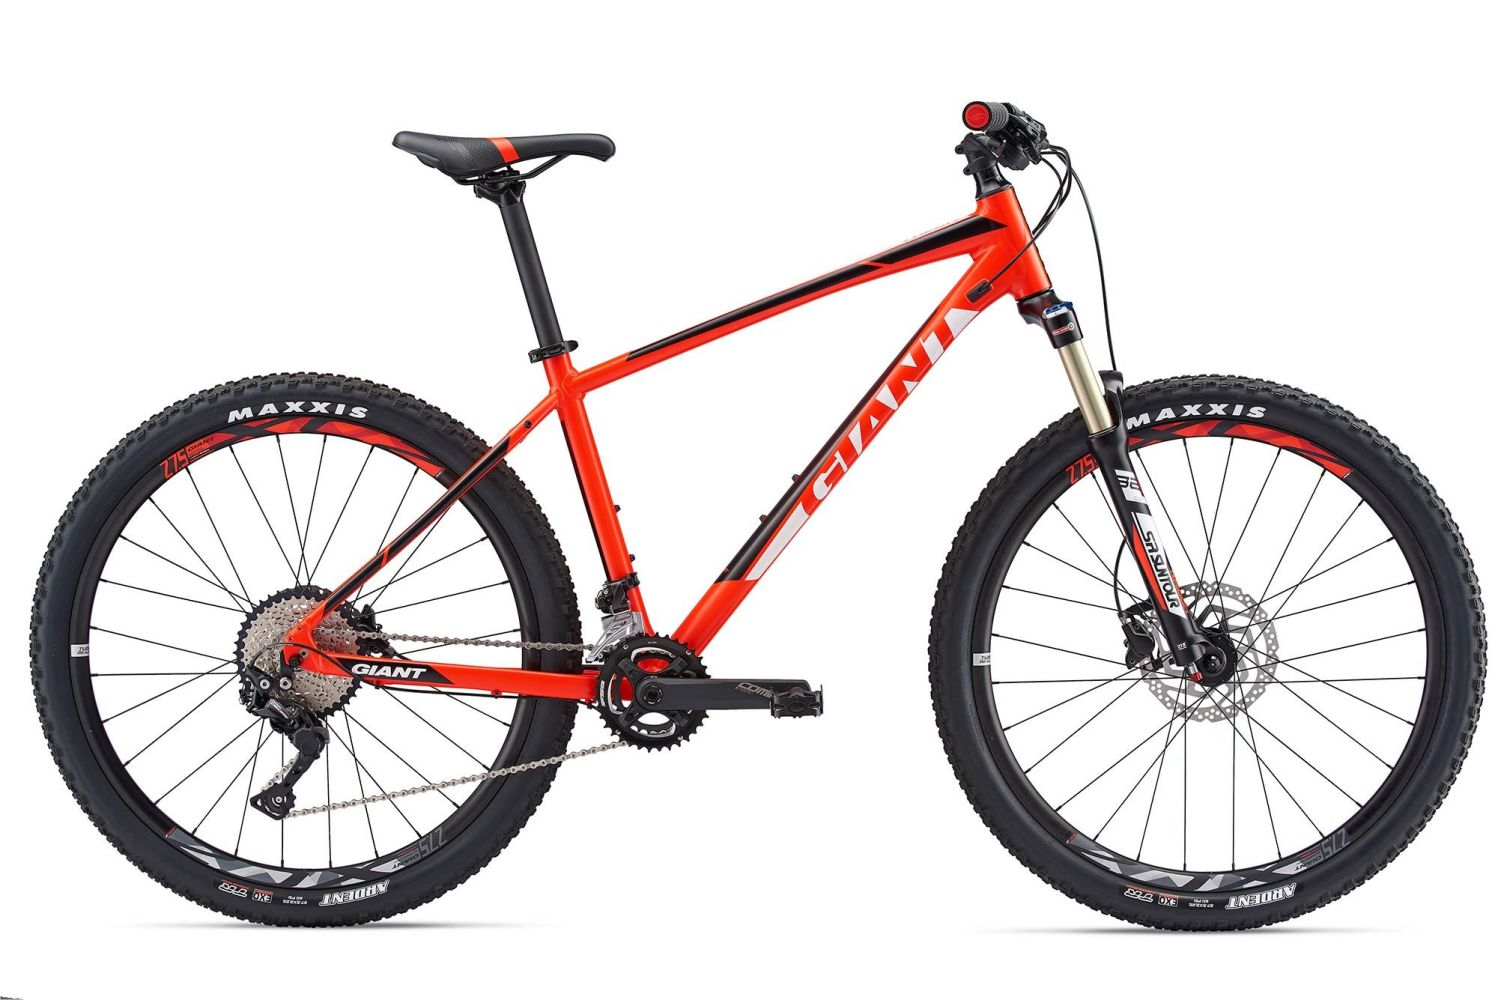 Talon 2018 Giant Bicycles Australia